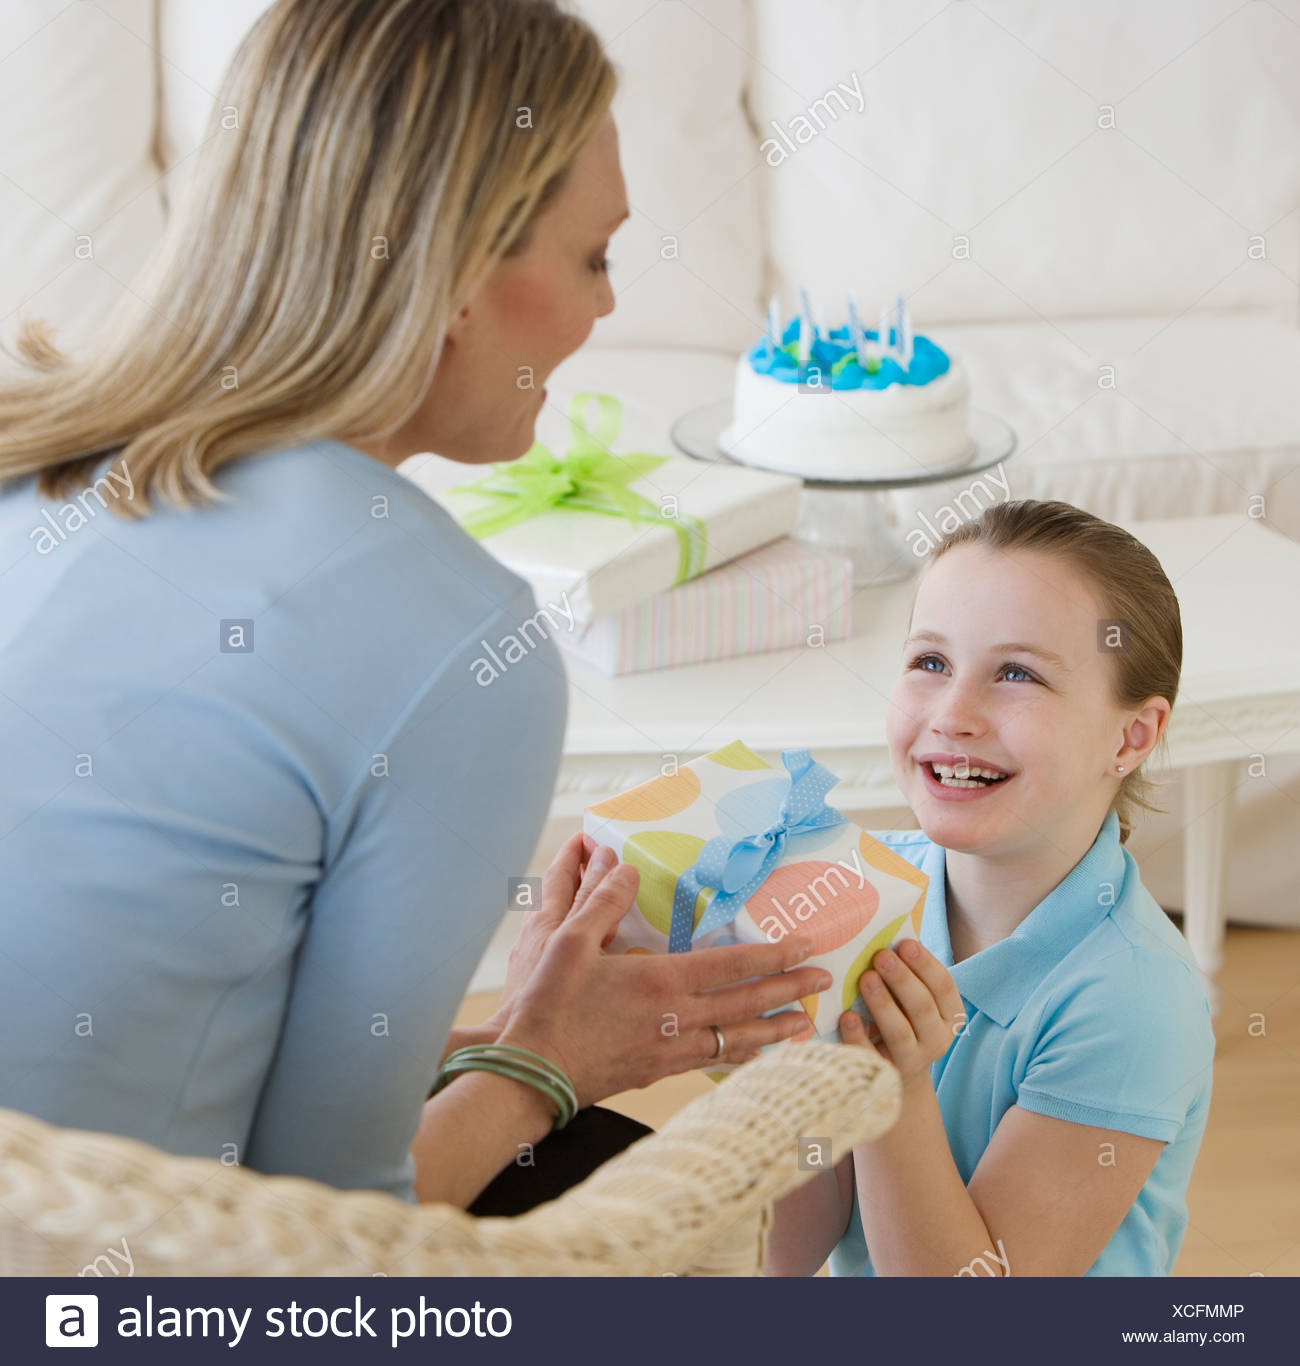 Mother Giving Daughter Birthday Gift